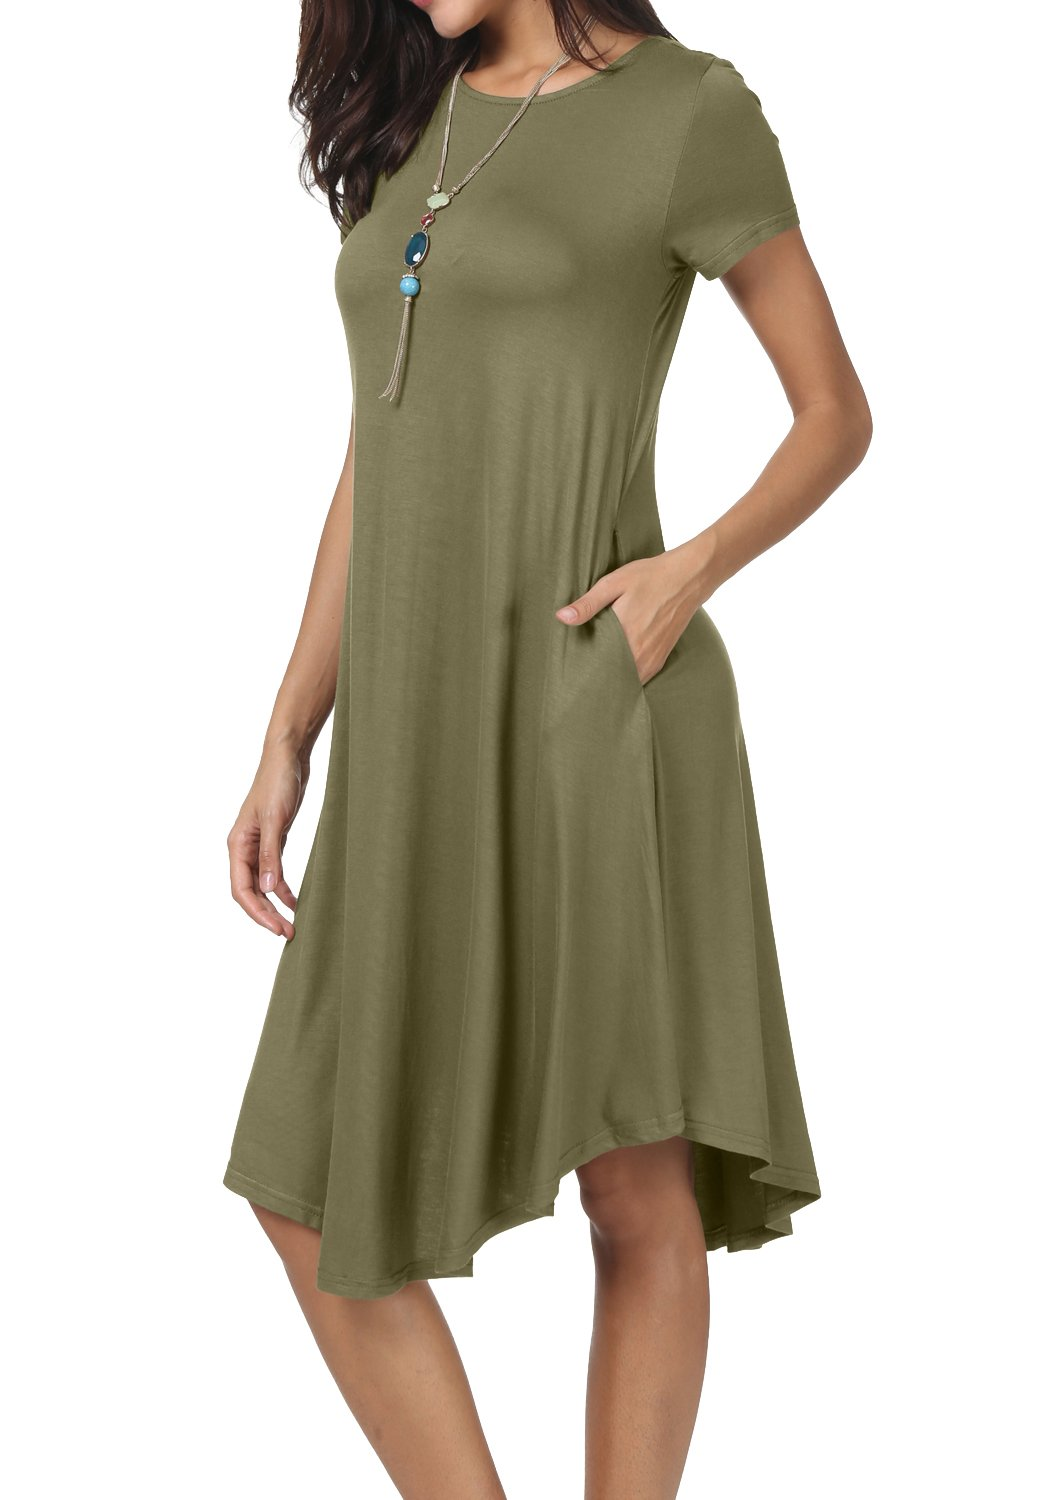 levaca Women Knit Draped Swing Loose Casual Tunic Knee Length Army Green L